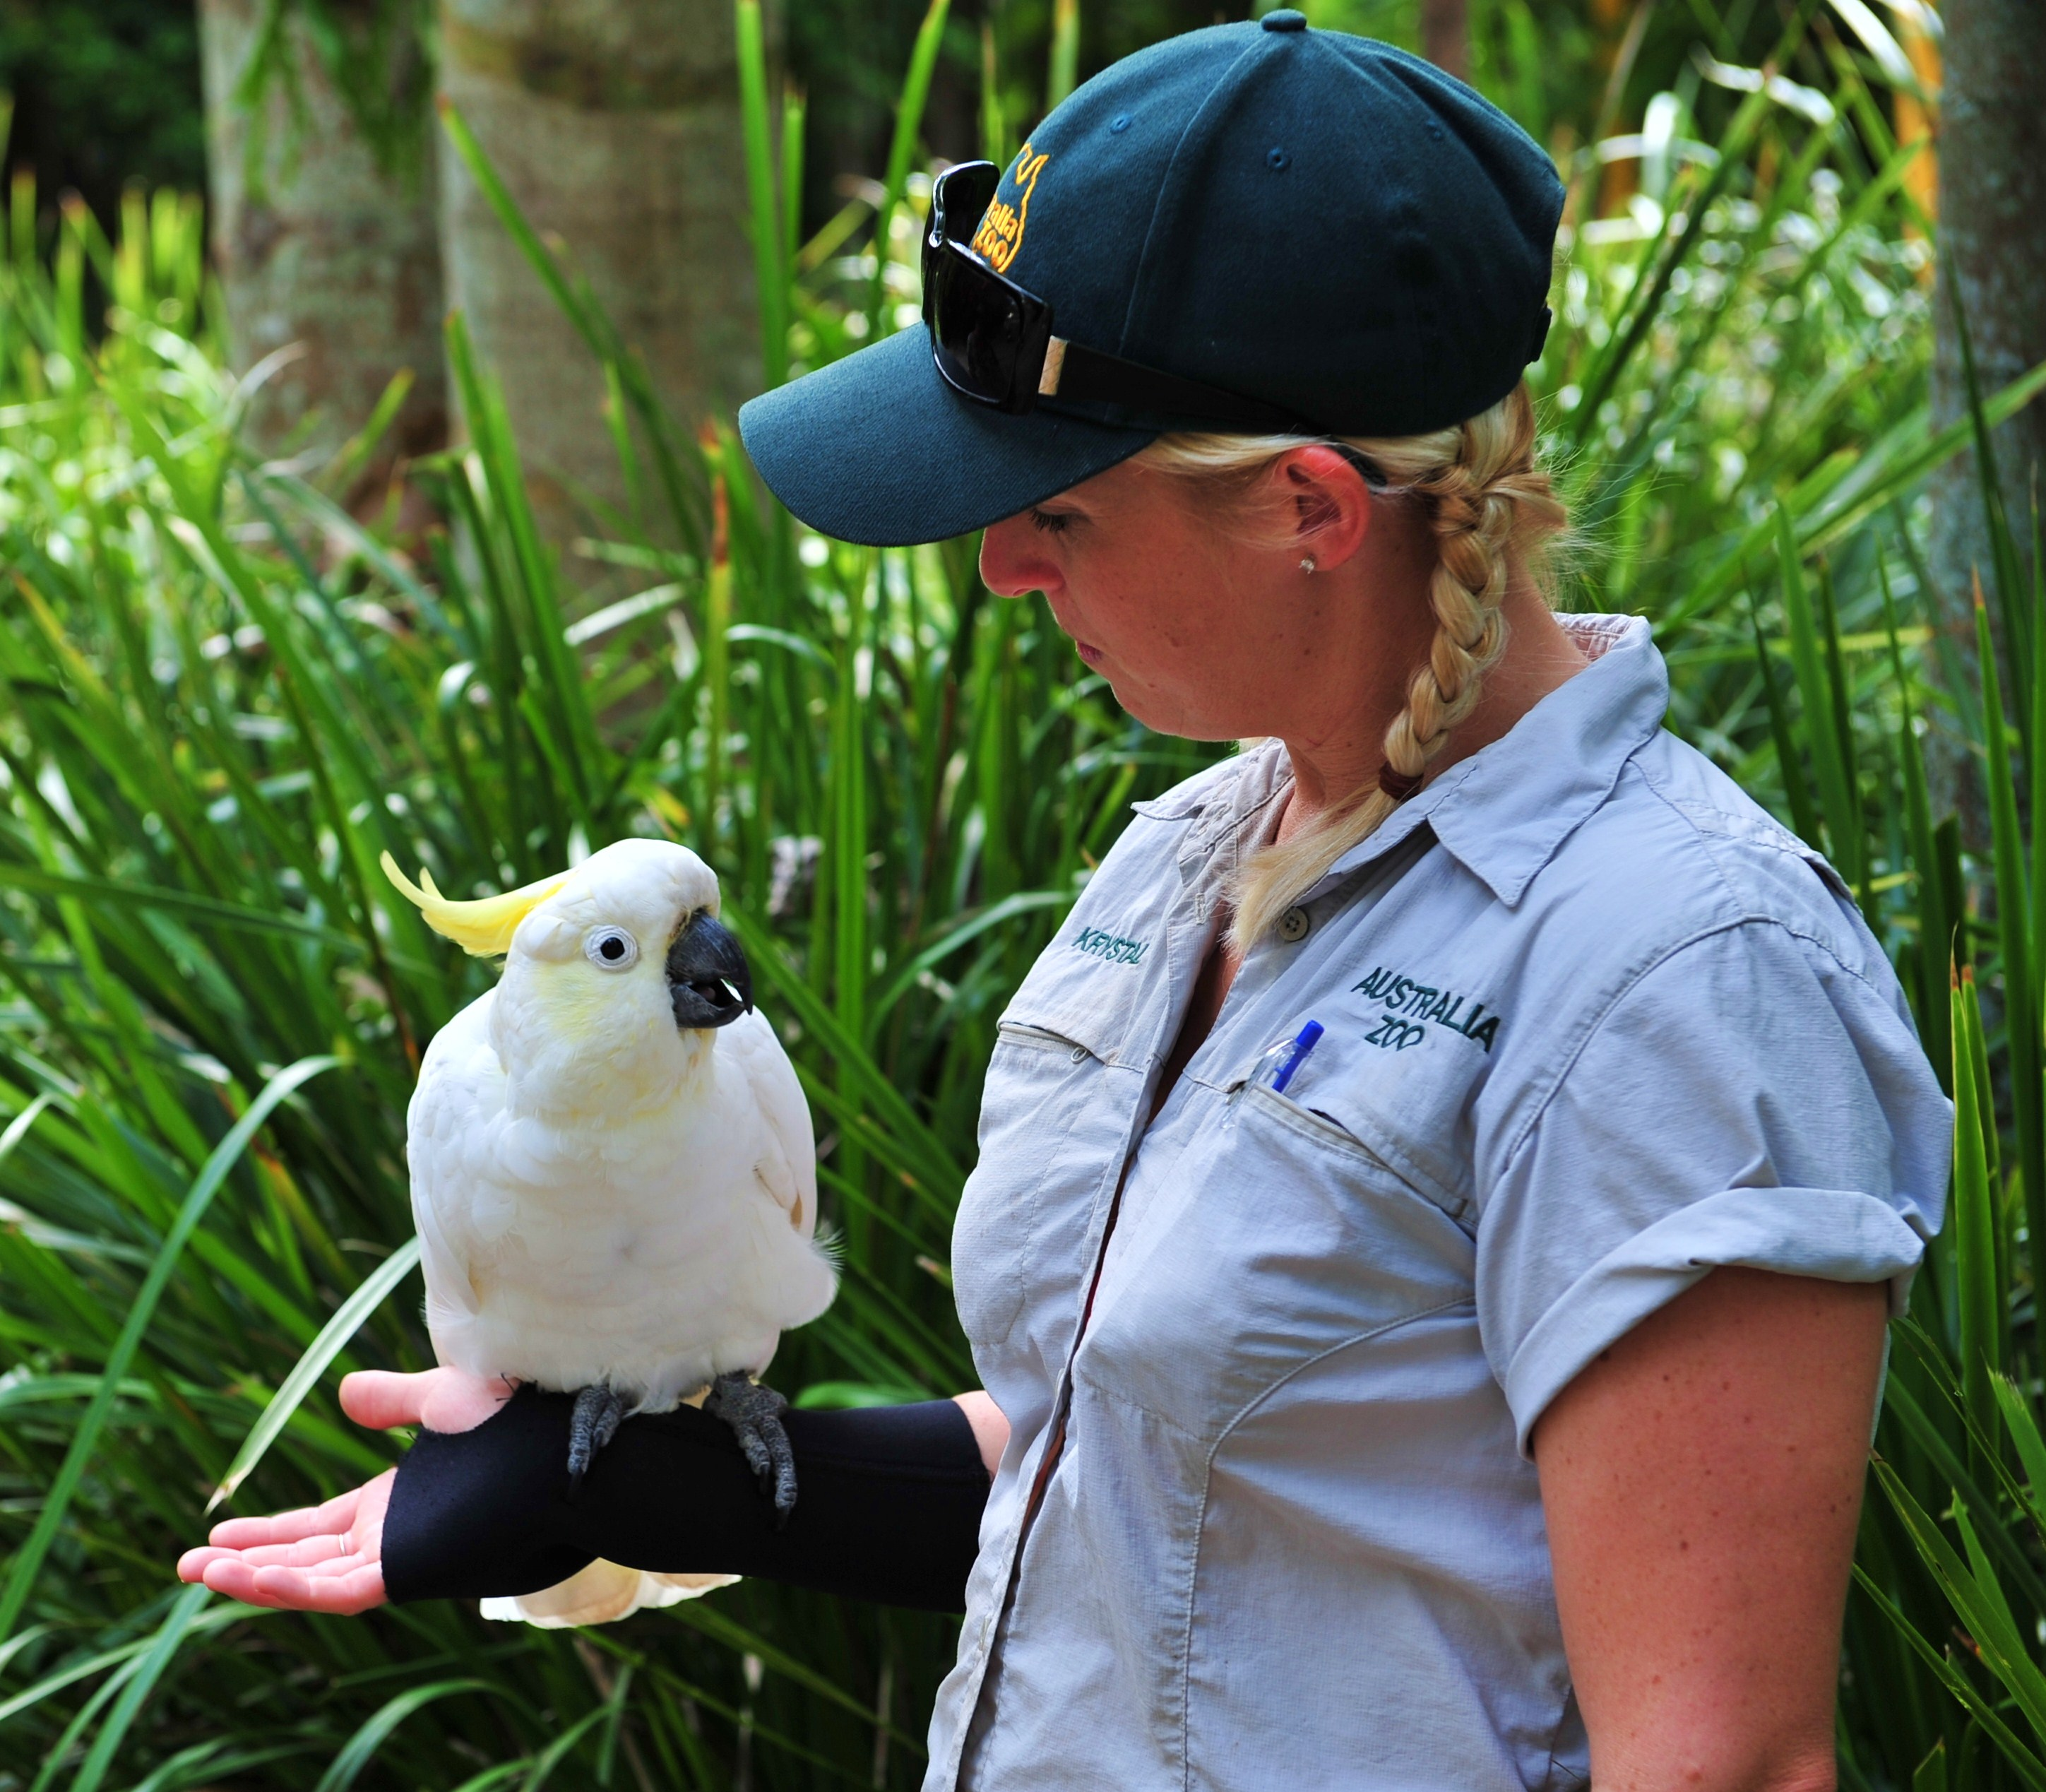 A  modern zoo keeper fashion (Australia Zoo, Queensland, source: Wikimedia Commons)